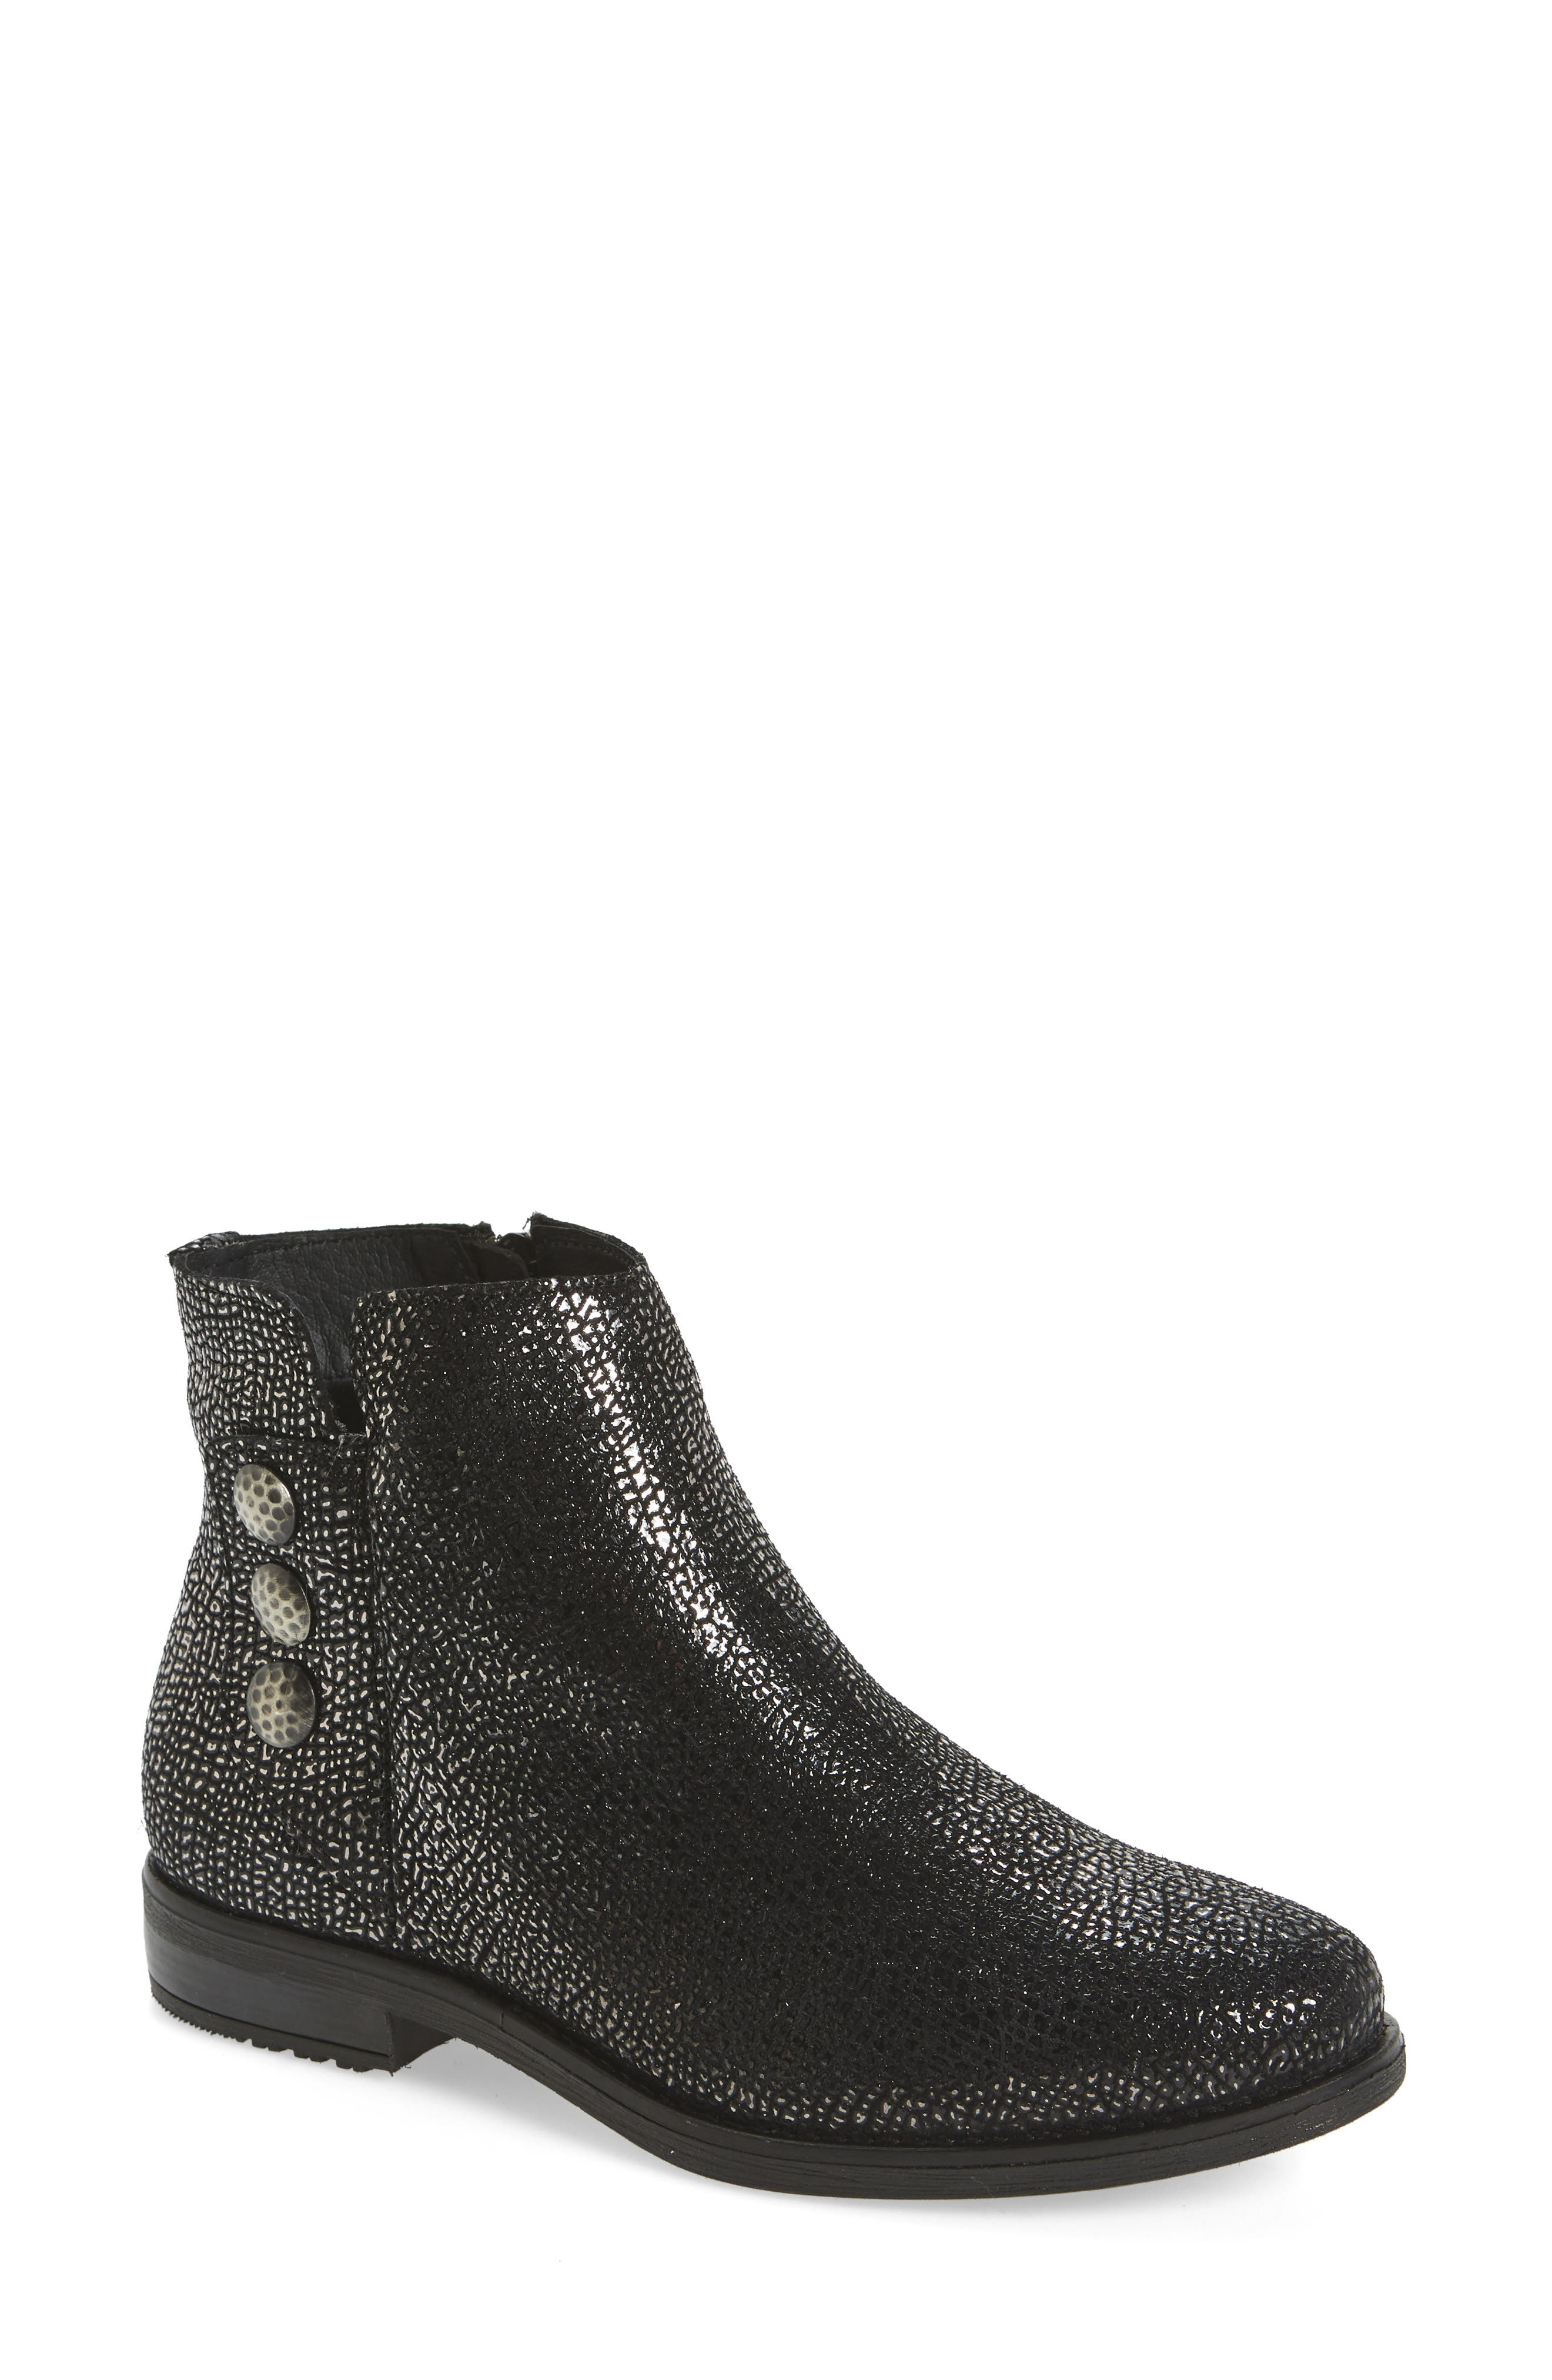 Sheridan Waterproof Bootie,                         Main,                         color, 001